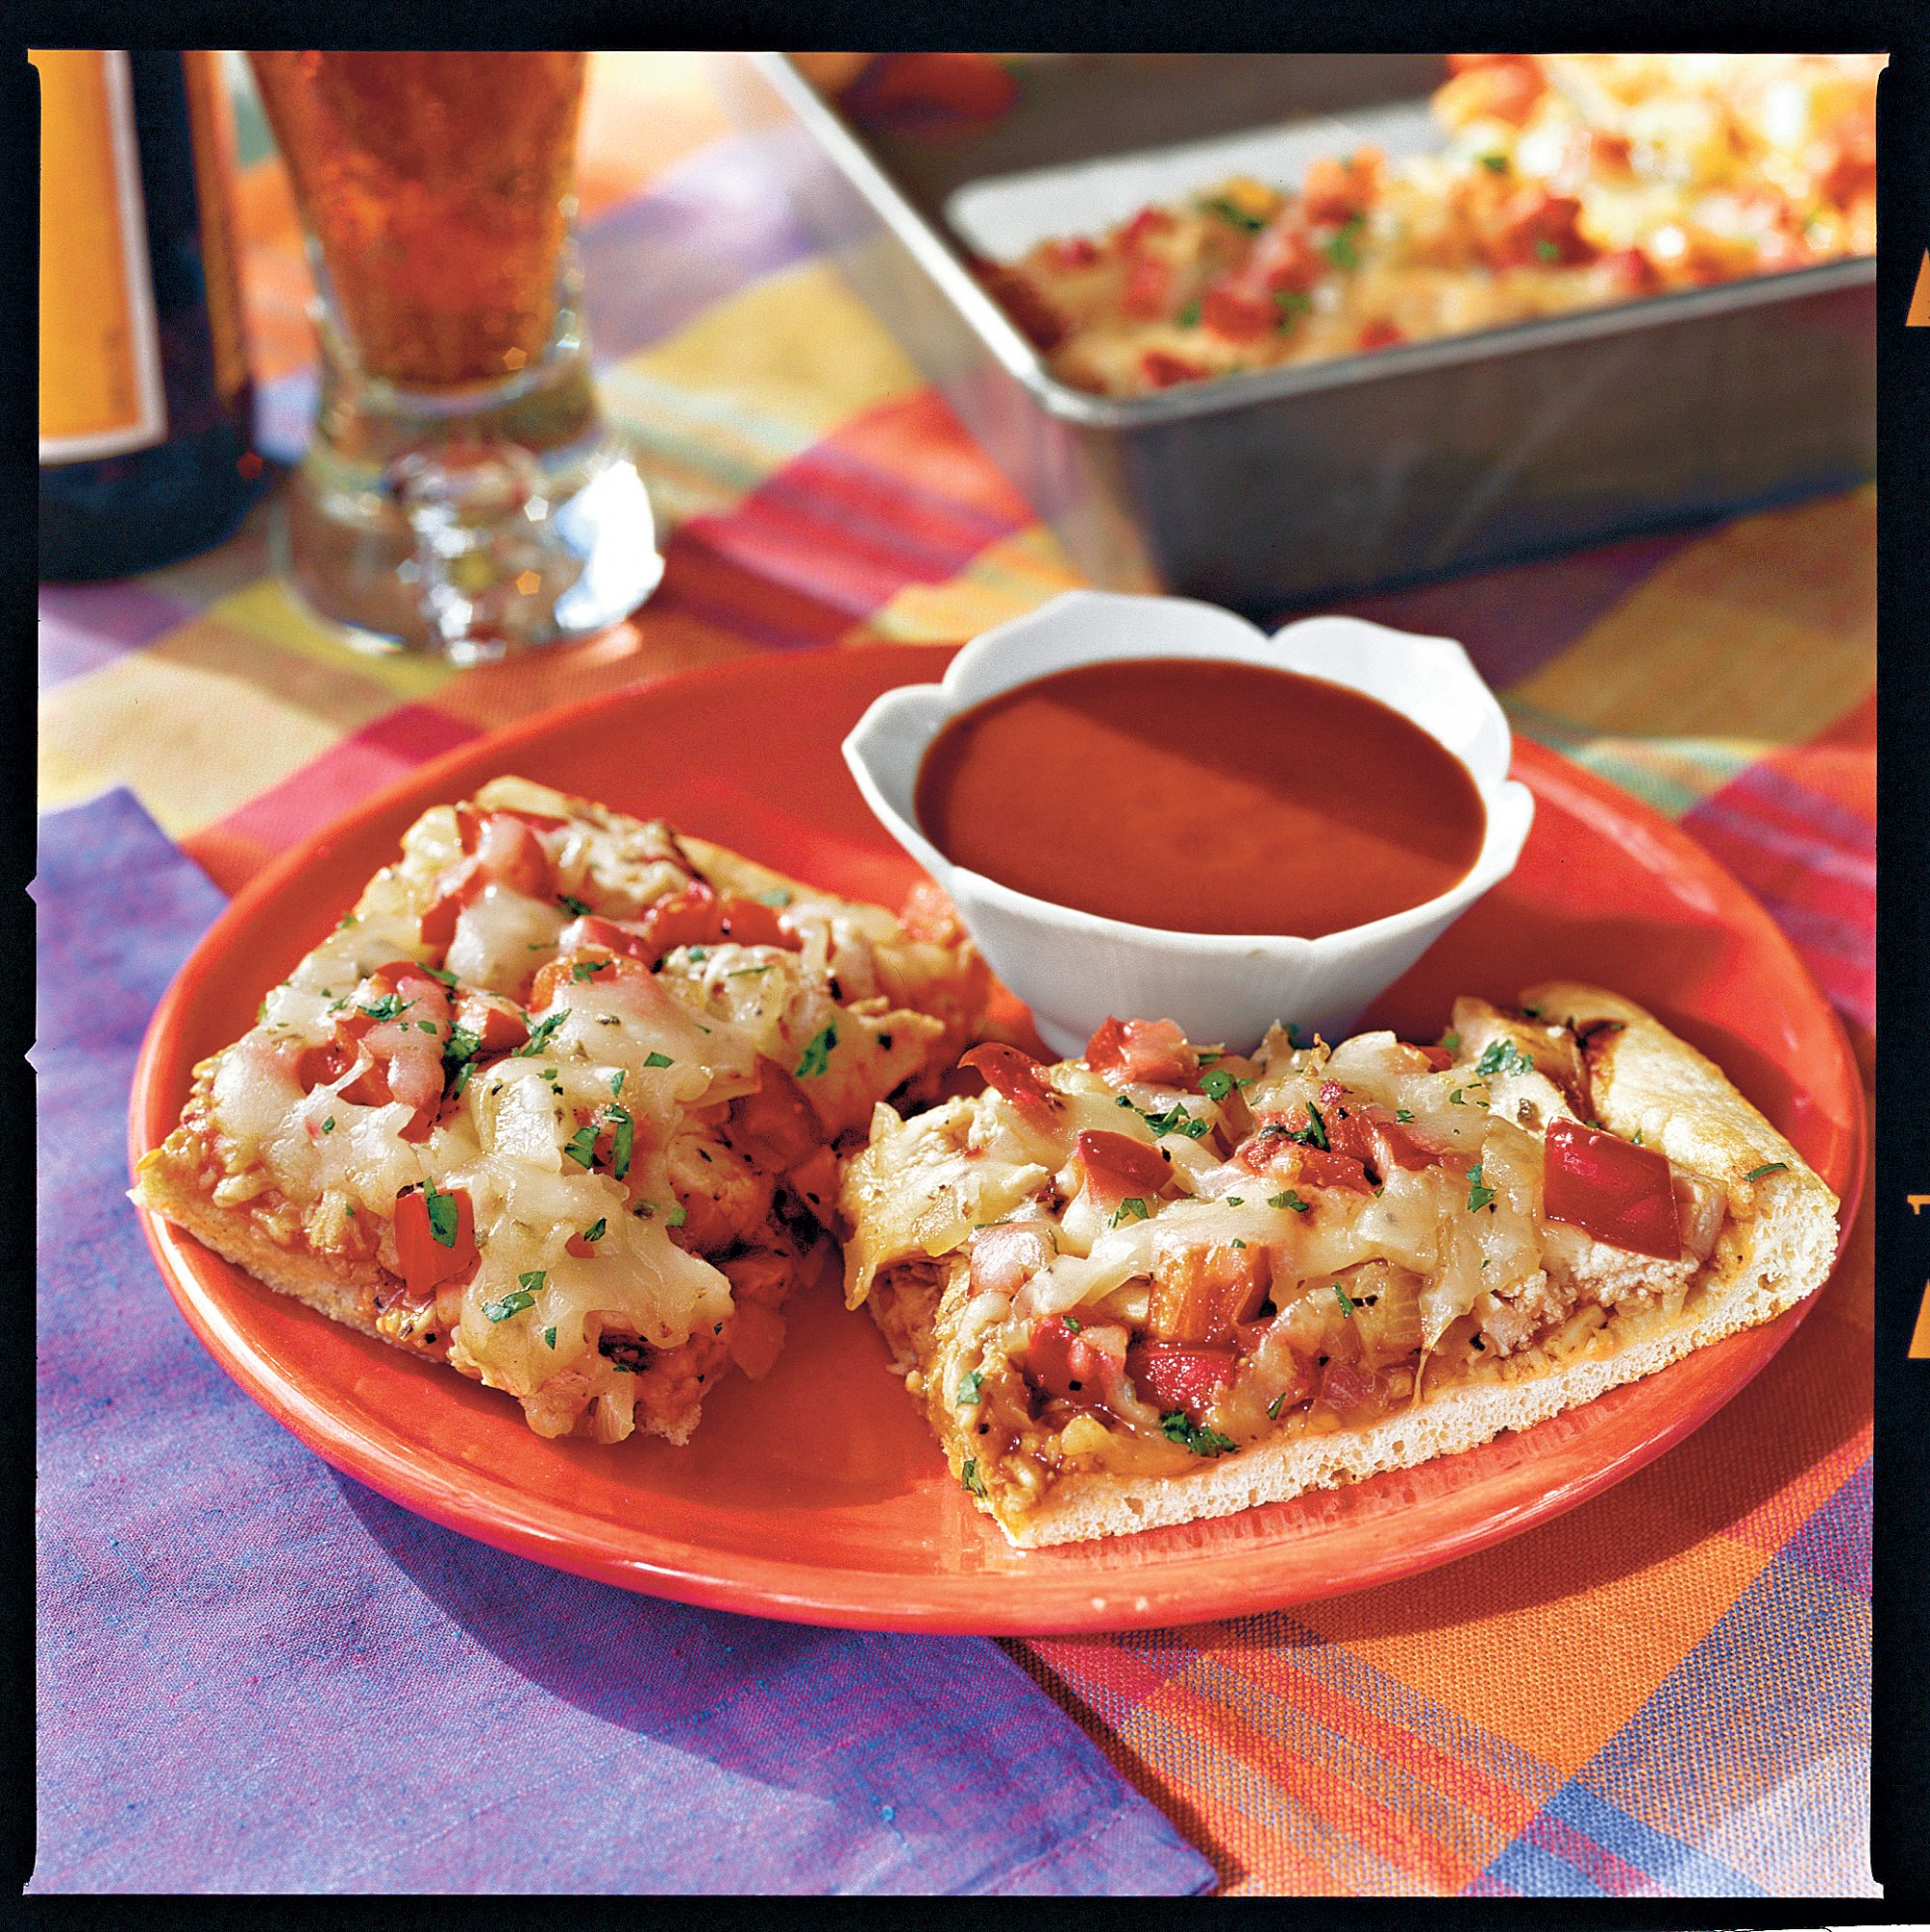 Quick and Easy Dinner Recipes: Quick 'n' Easy Chicken Barbecue Pizza